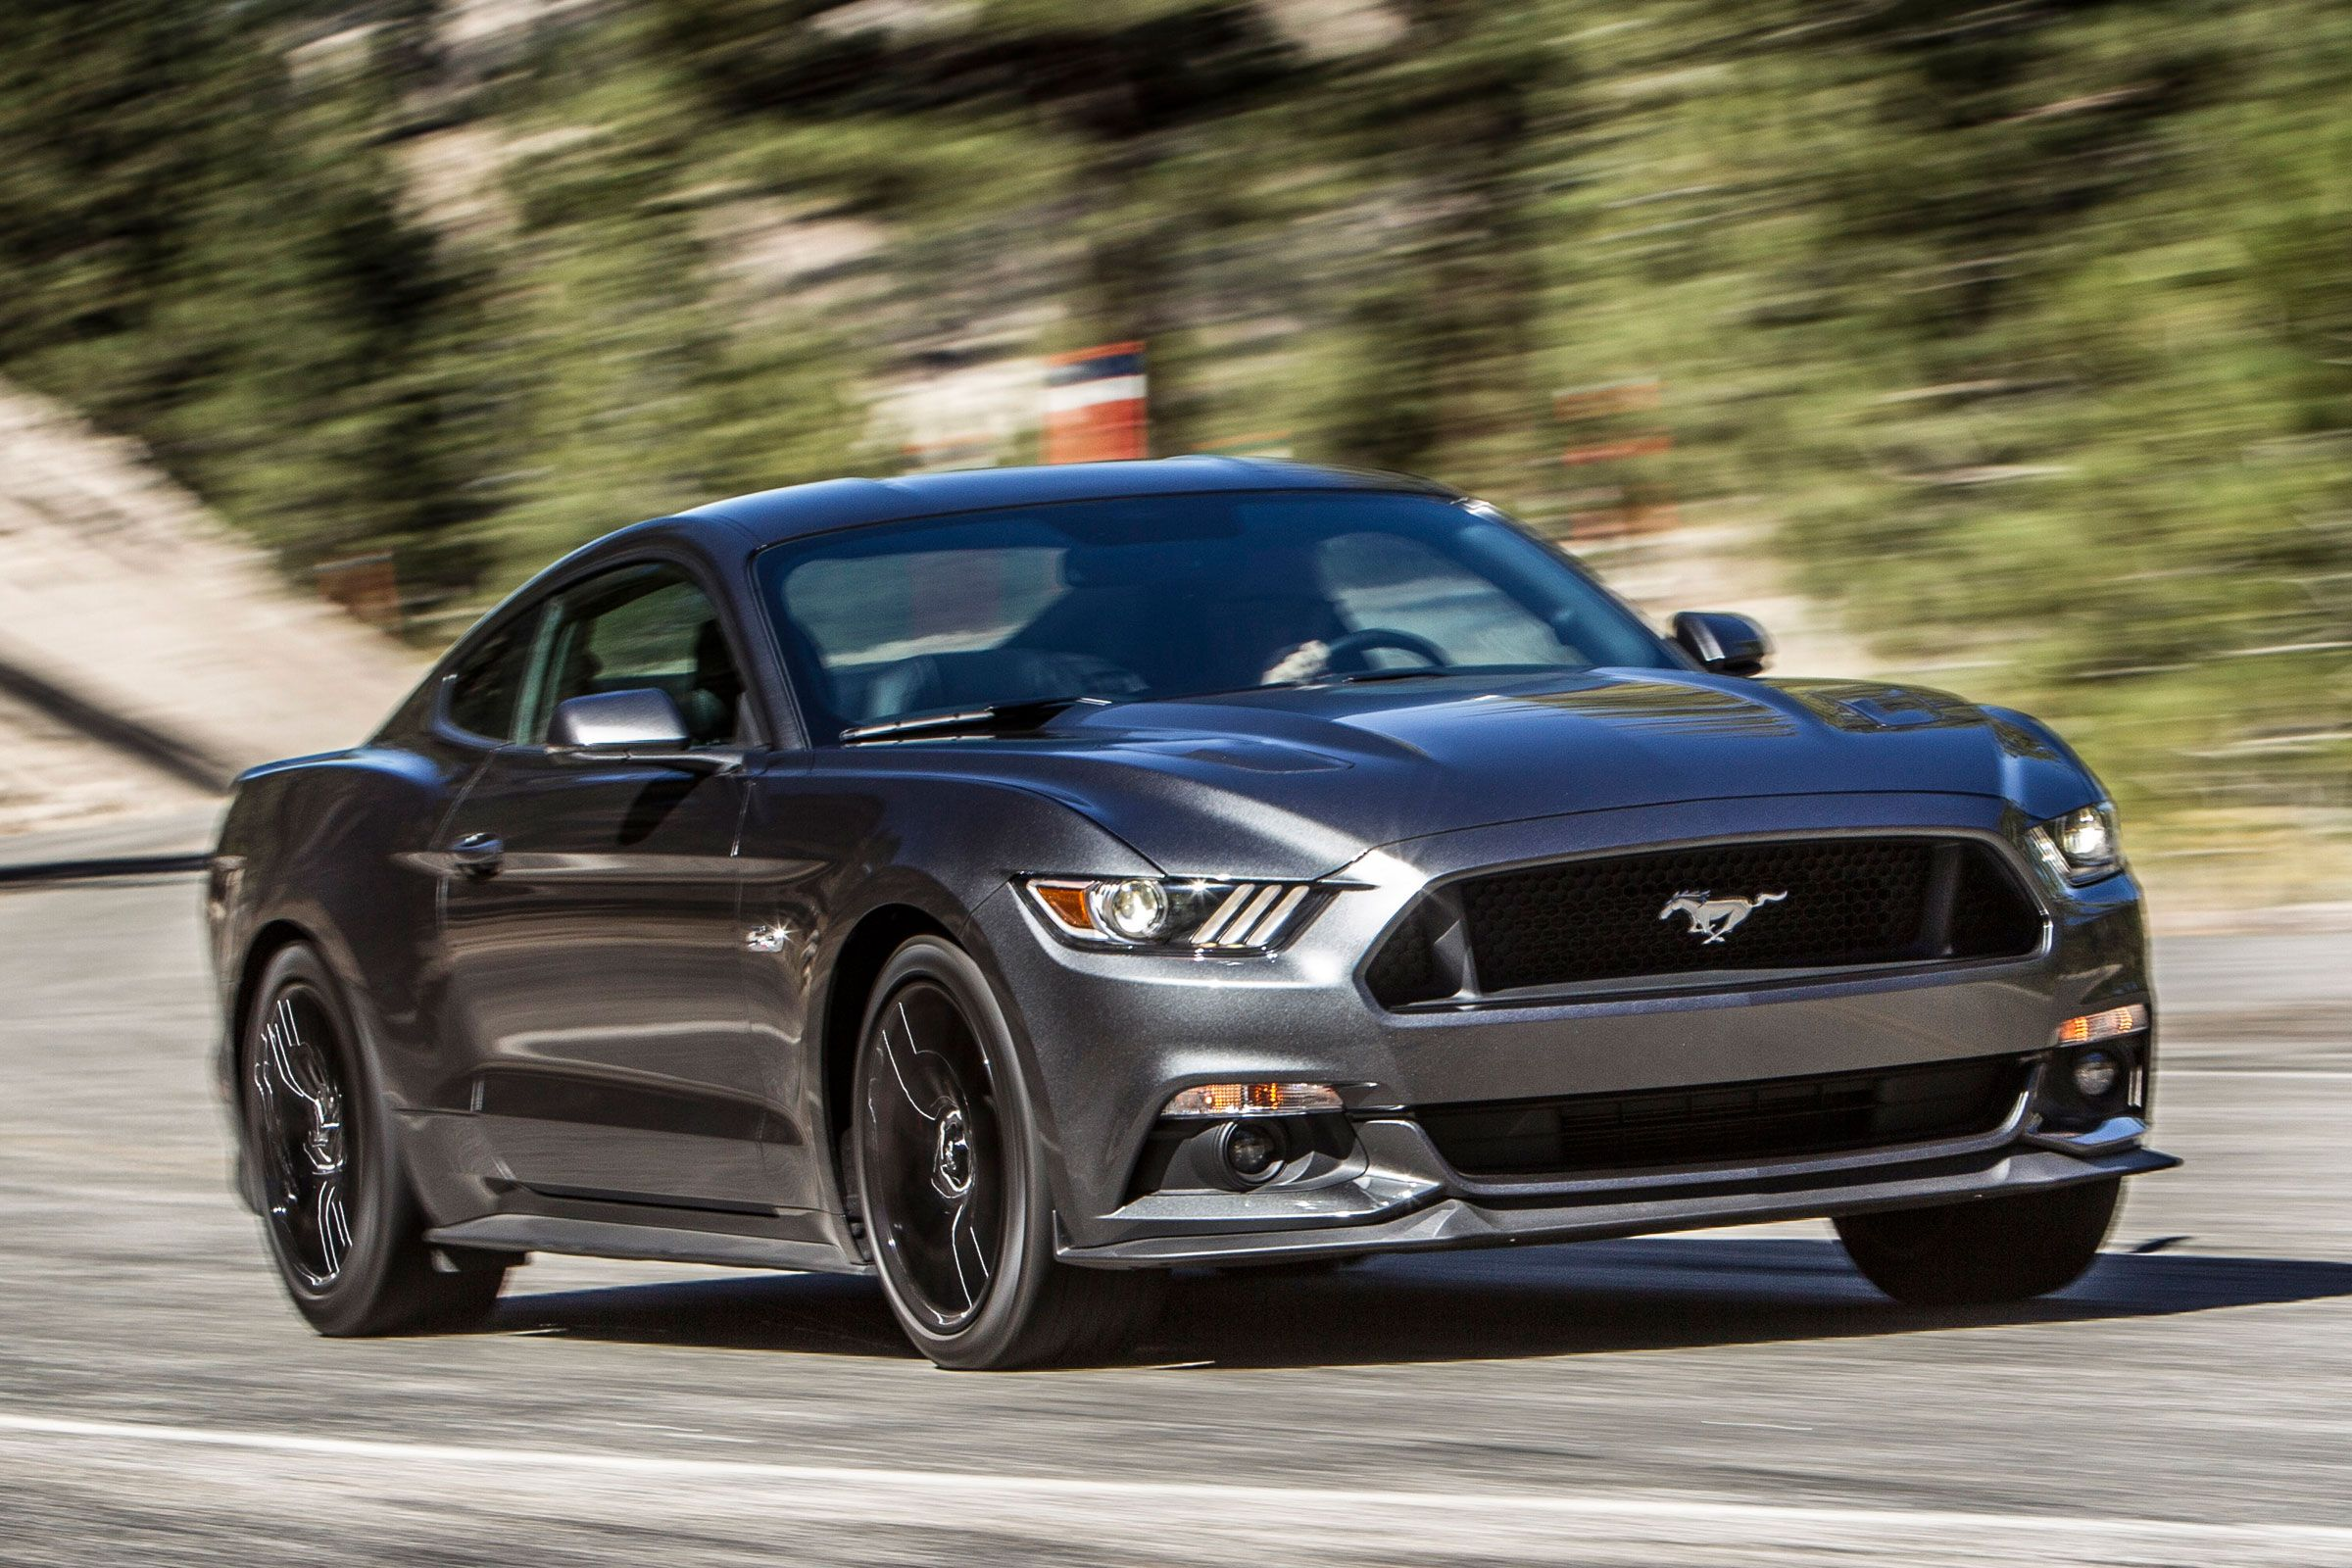 2015 Ford Mustang Gt Ford Mustang Uk 2015 Ford Mustang New Ford Mustang